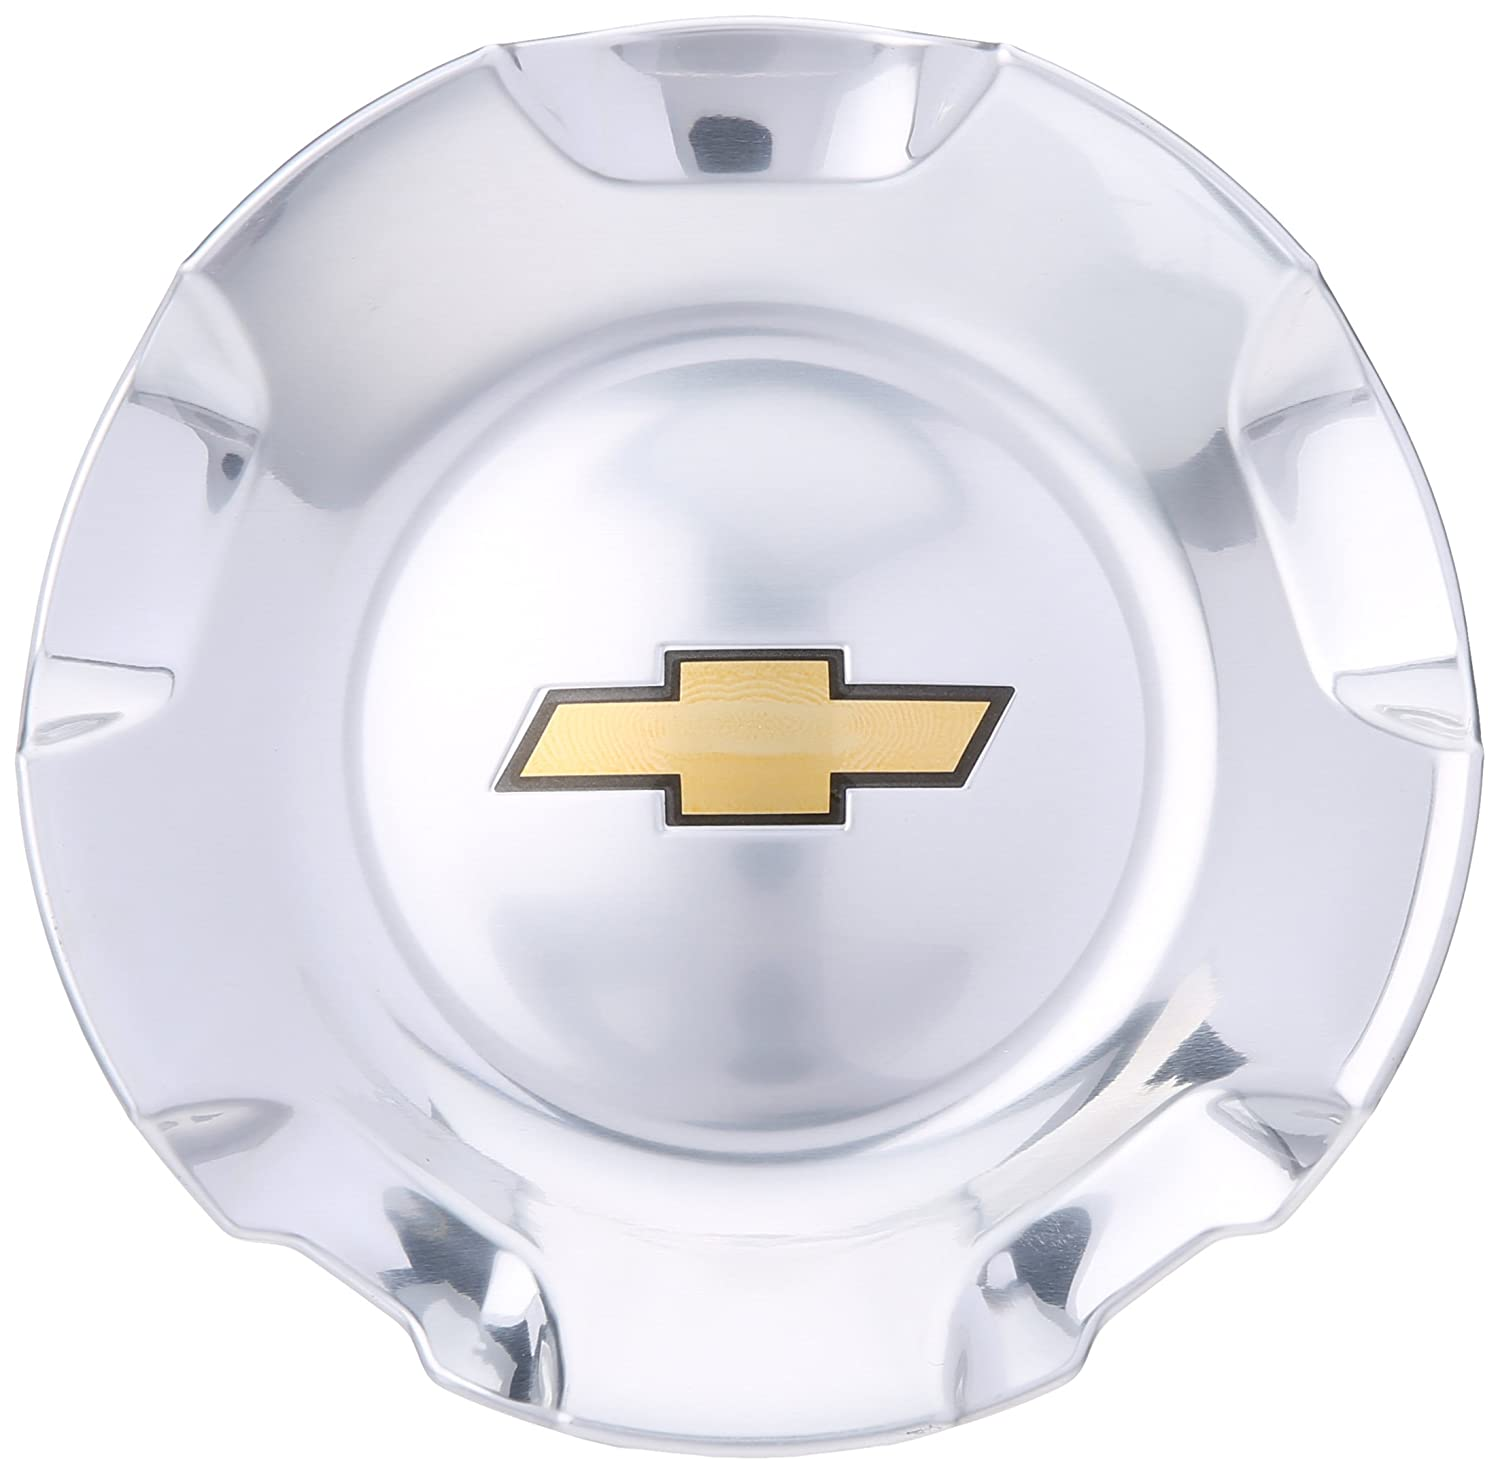 Genuine GM 9596007 Hub Cap